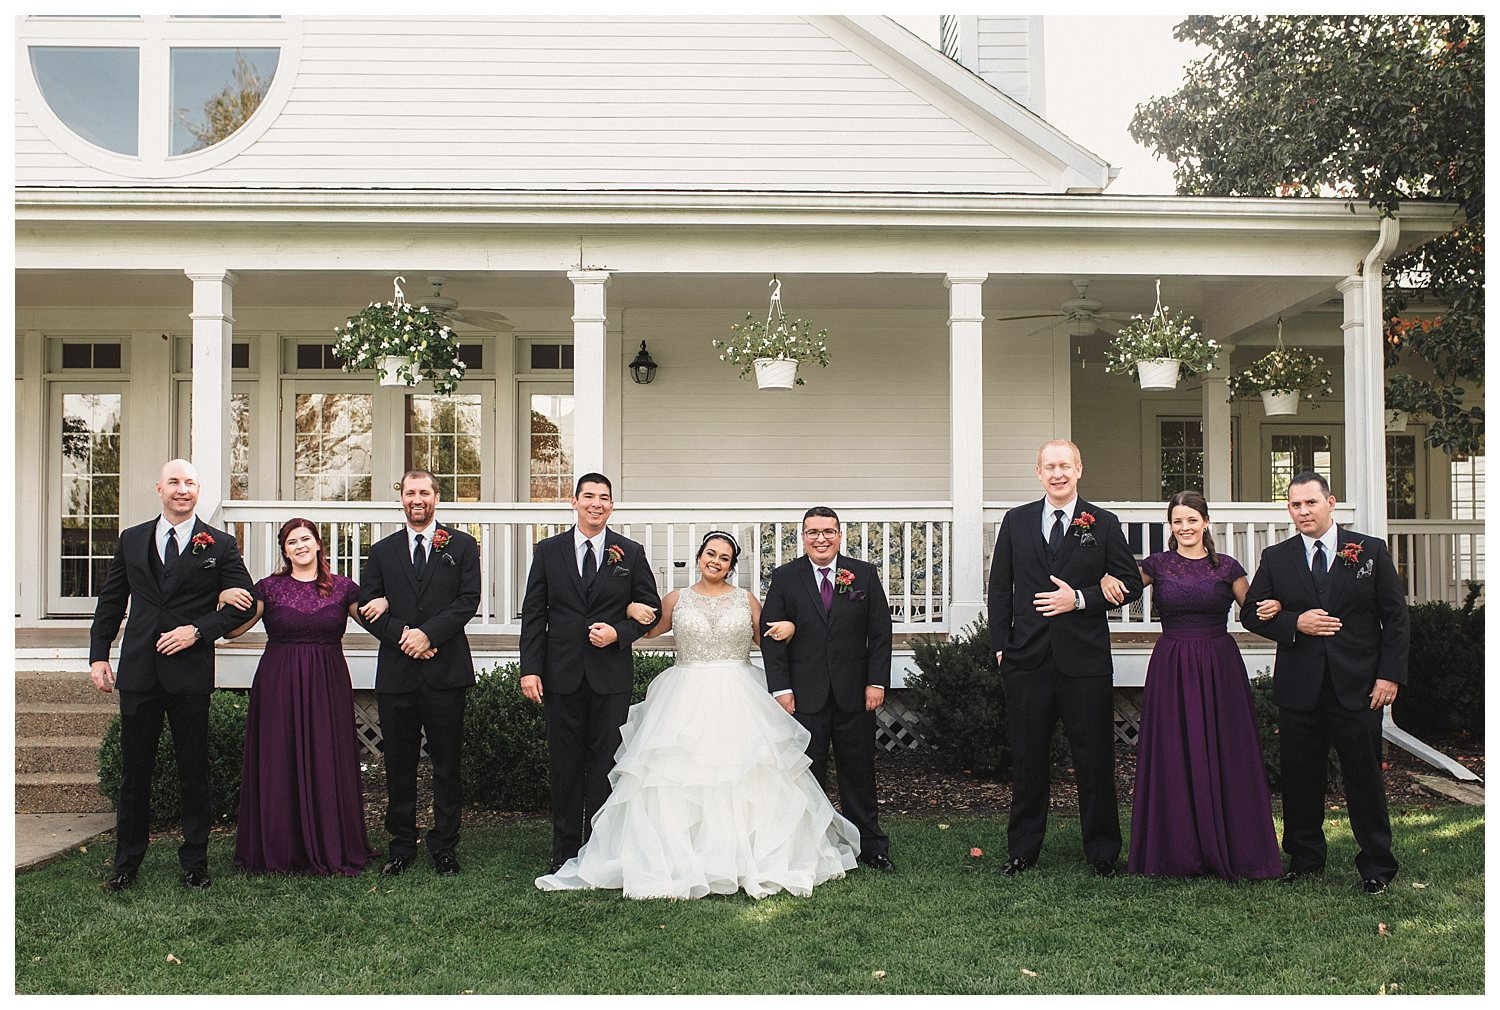 Kelsey_Diane_Photography_Hawthorne_House_Parkville_Kansas_City_Wedding_Veronica_Pat_0022.jpg